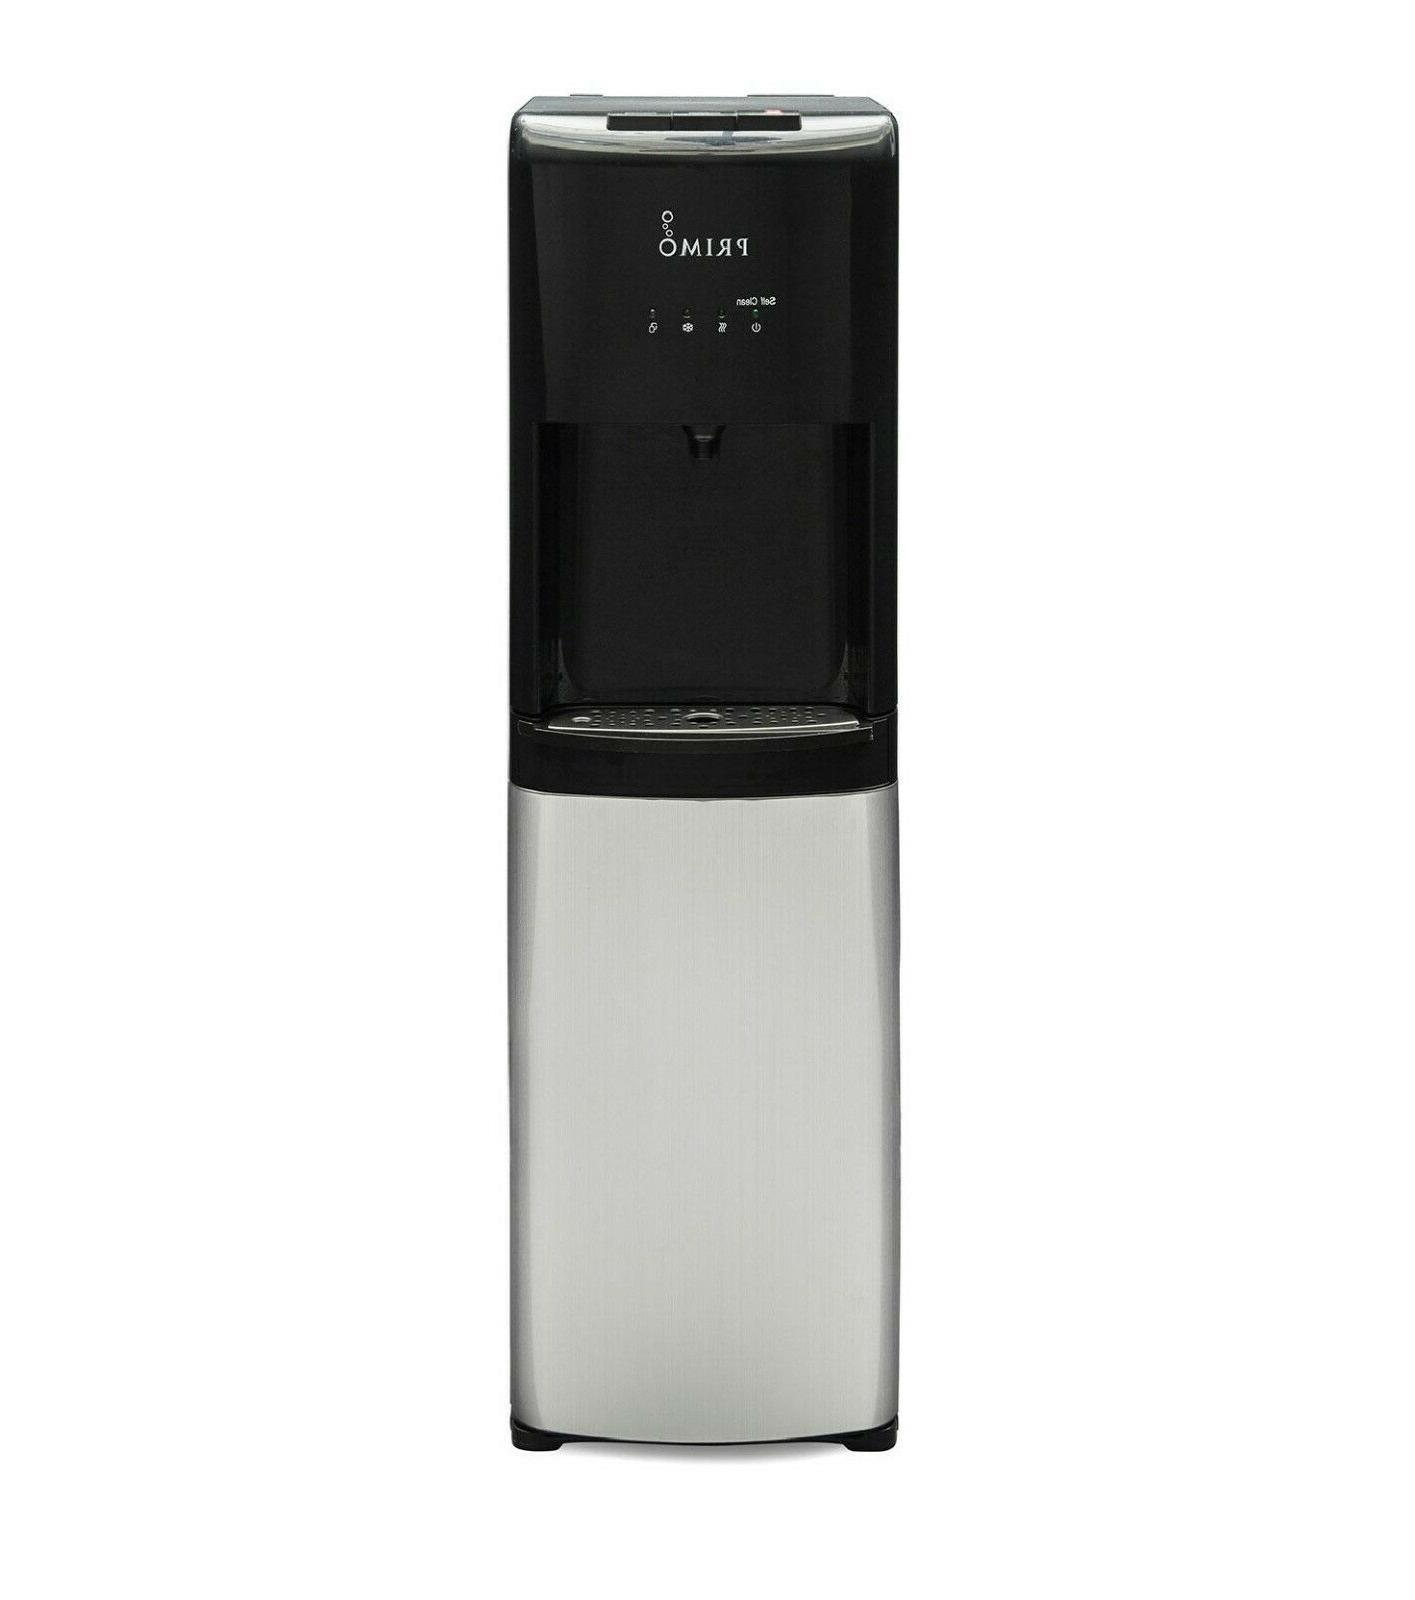 Hot Cold Water Dispenser Black 5 Gallon Capacity Bottom Load